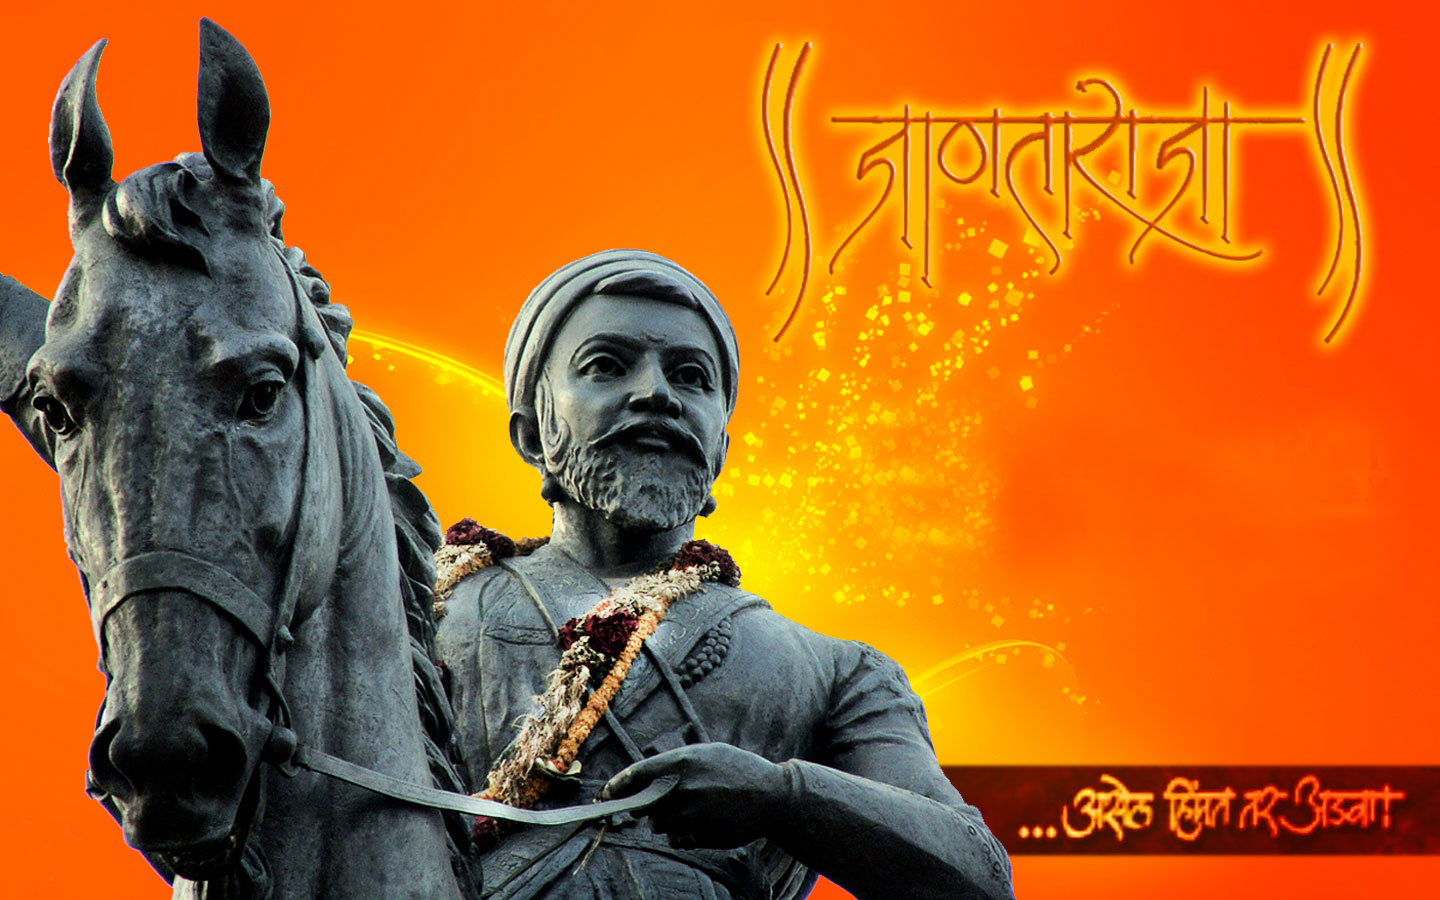 Hd wallpaper shivaji maharaj - Hd Wallpaper Shivaji Maharaj 41